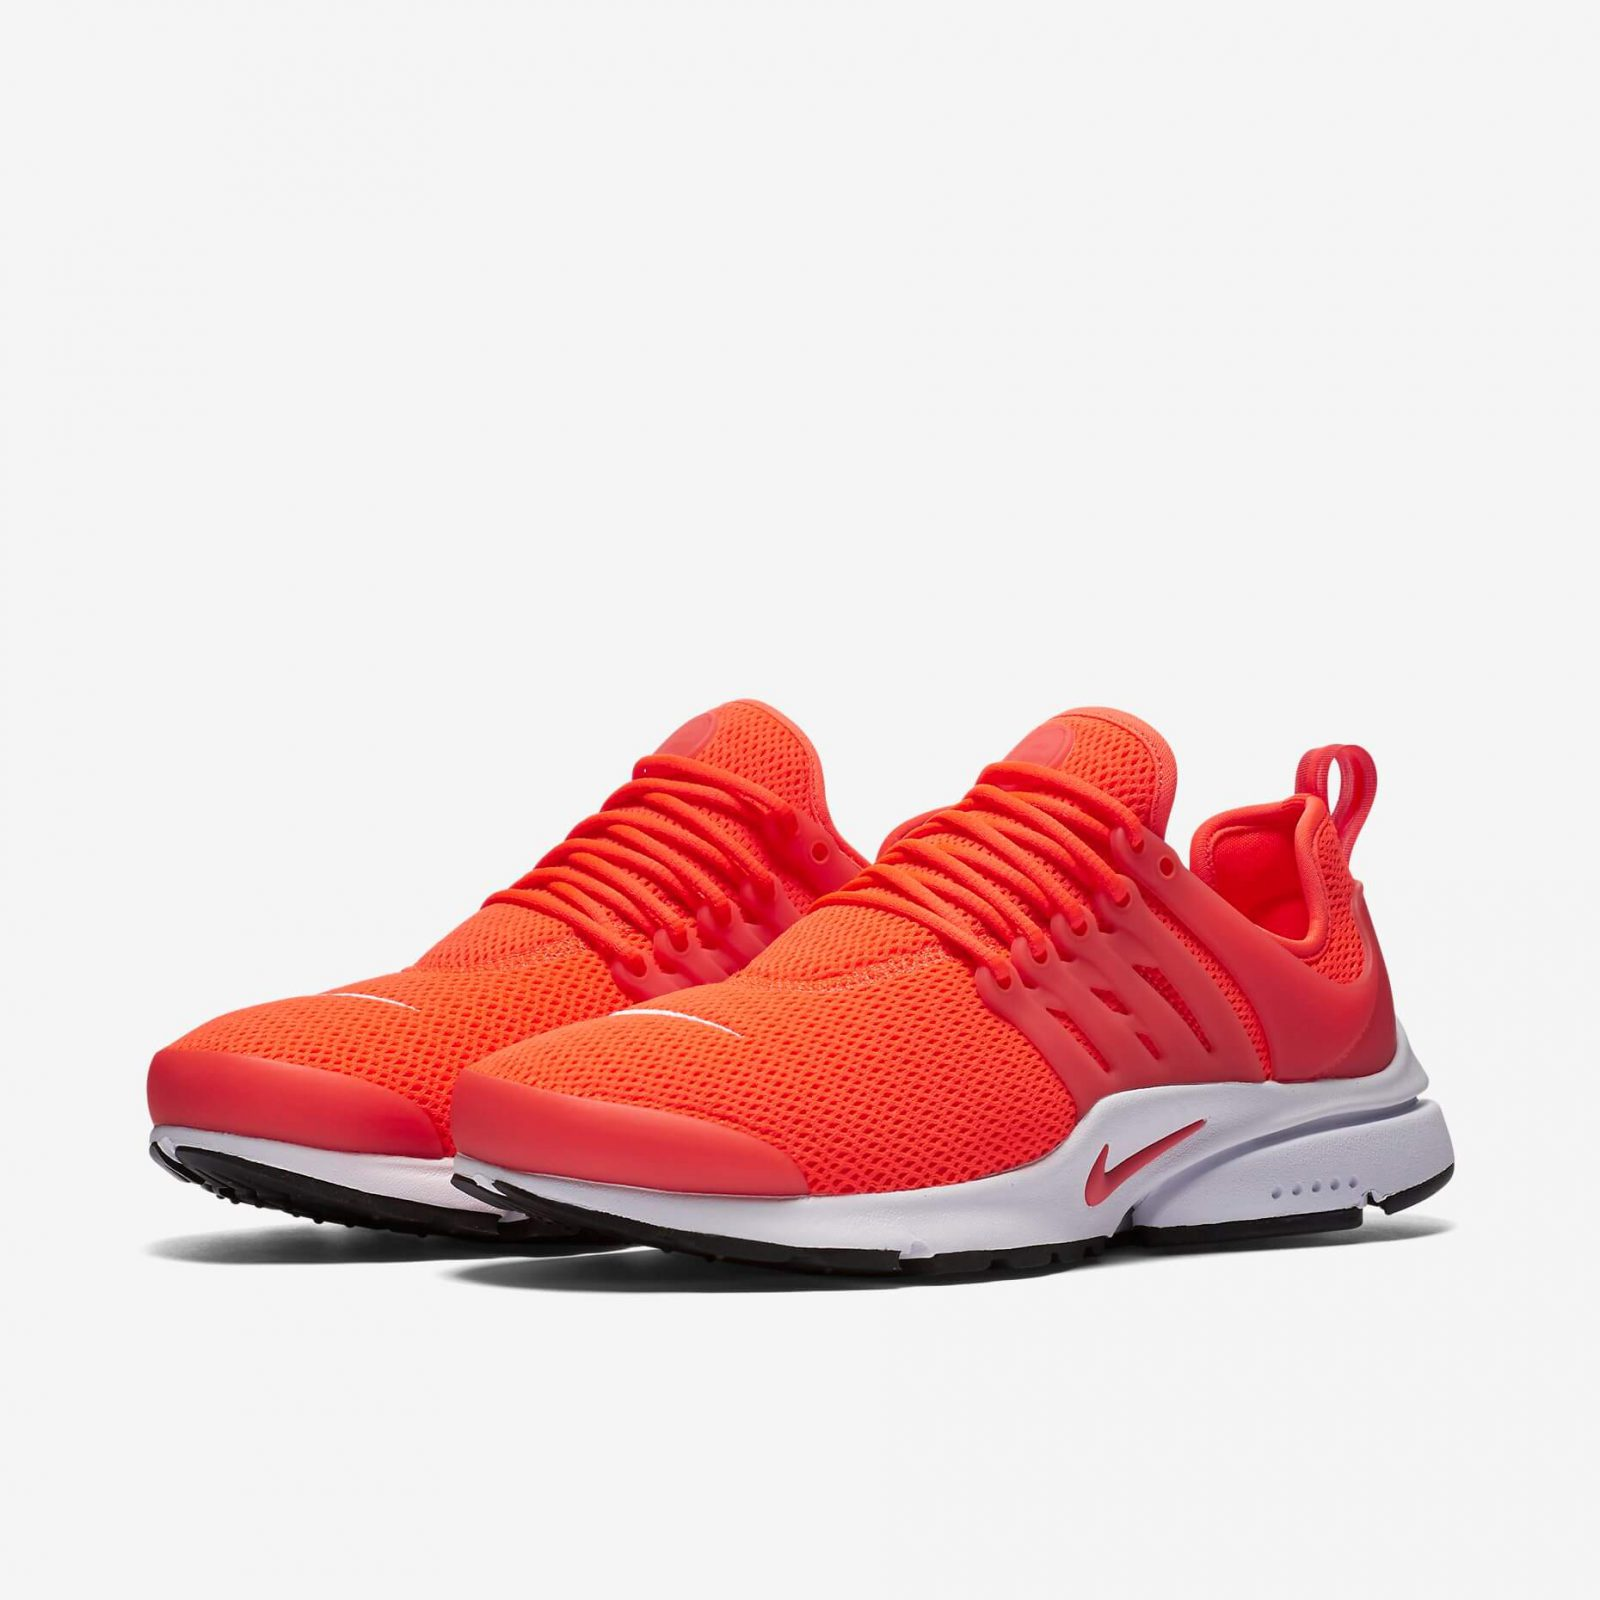 Nike Presto Orange   Buy Nike Sneakers   Shoes  97958606a